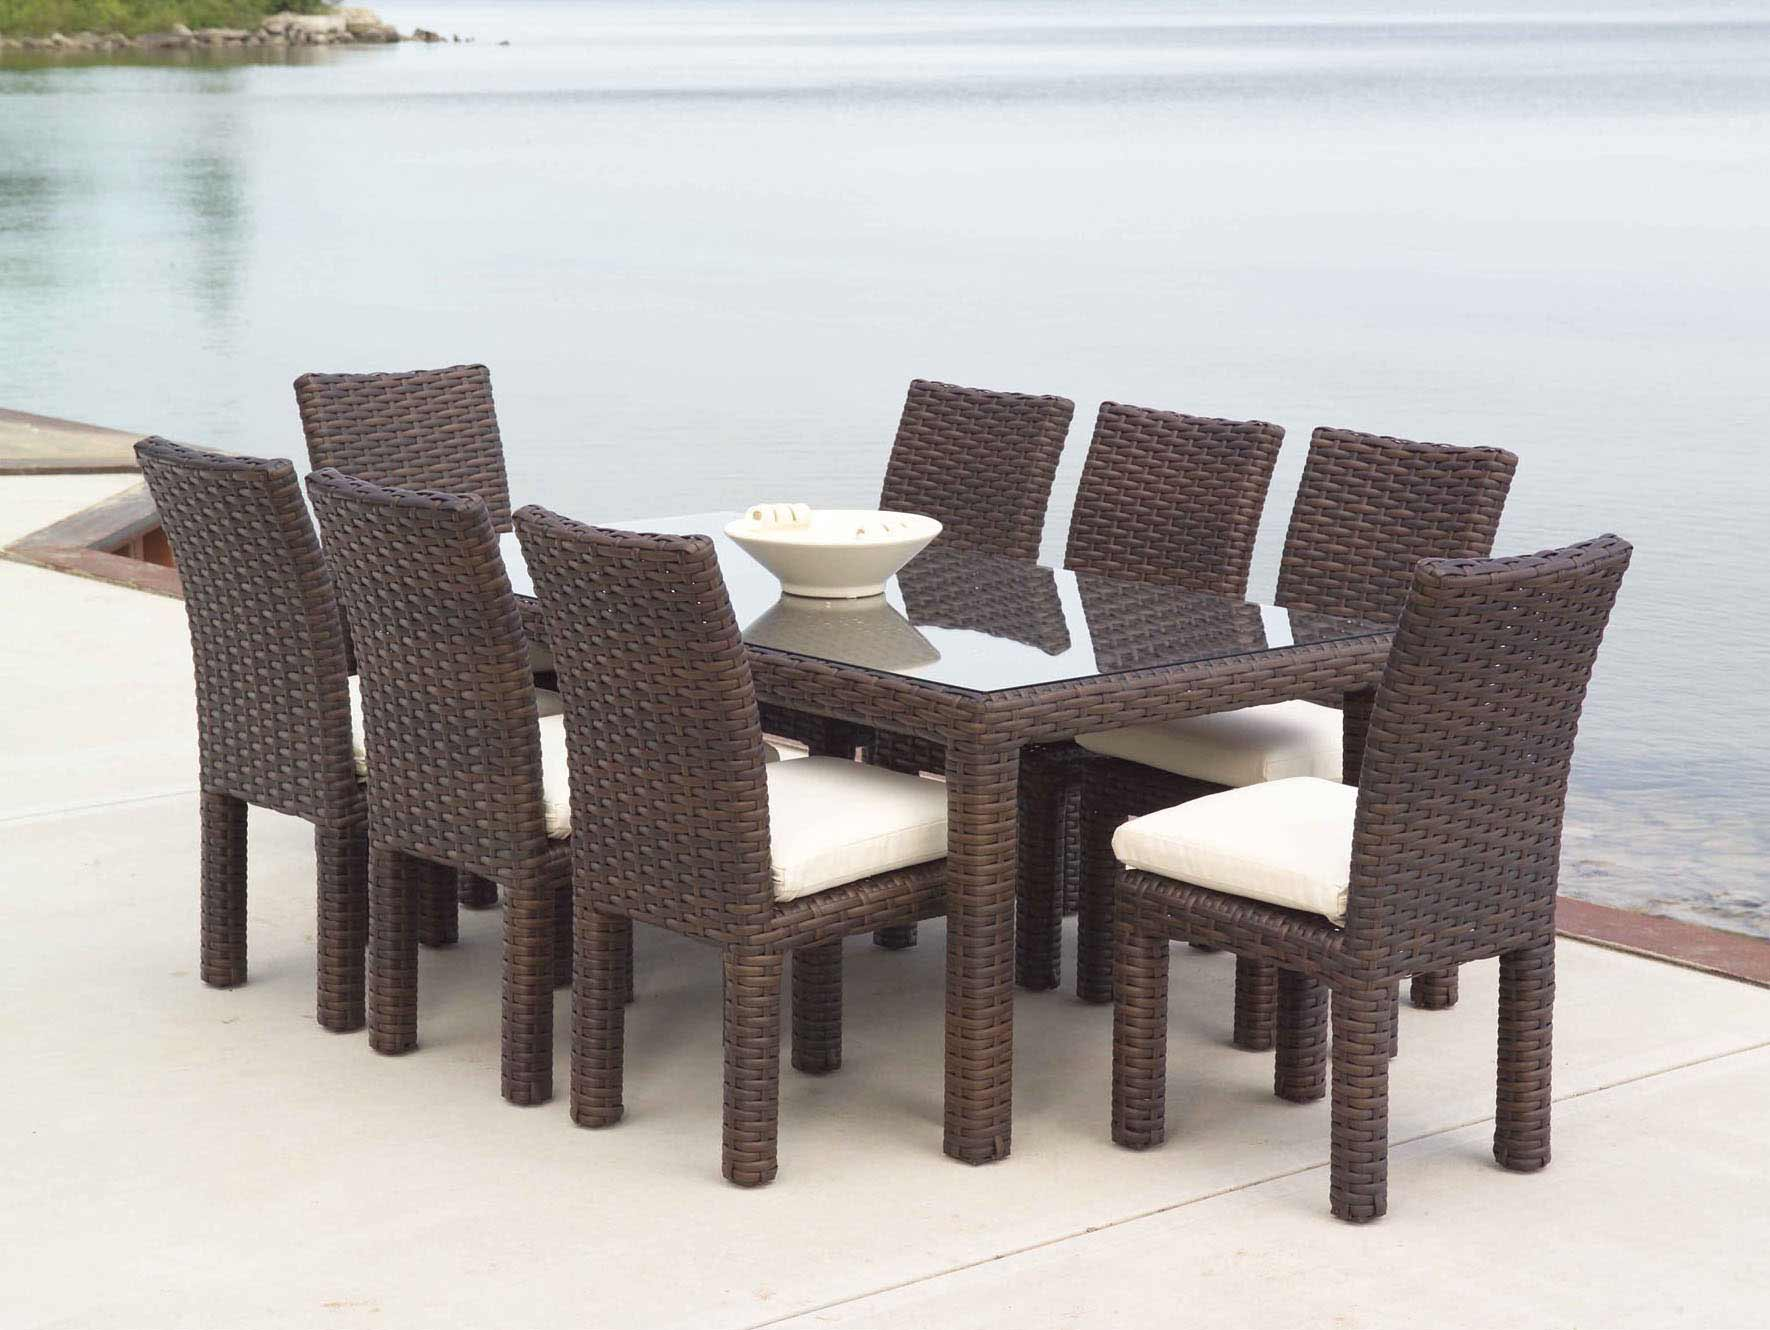 Outdoor Wicker Furniture Dining Sets Photo   2